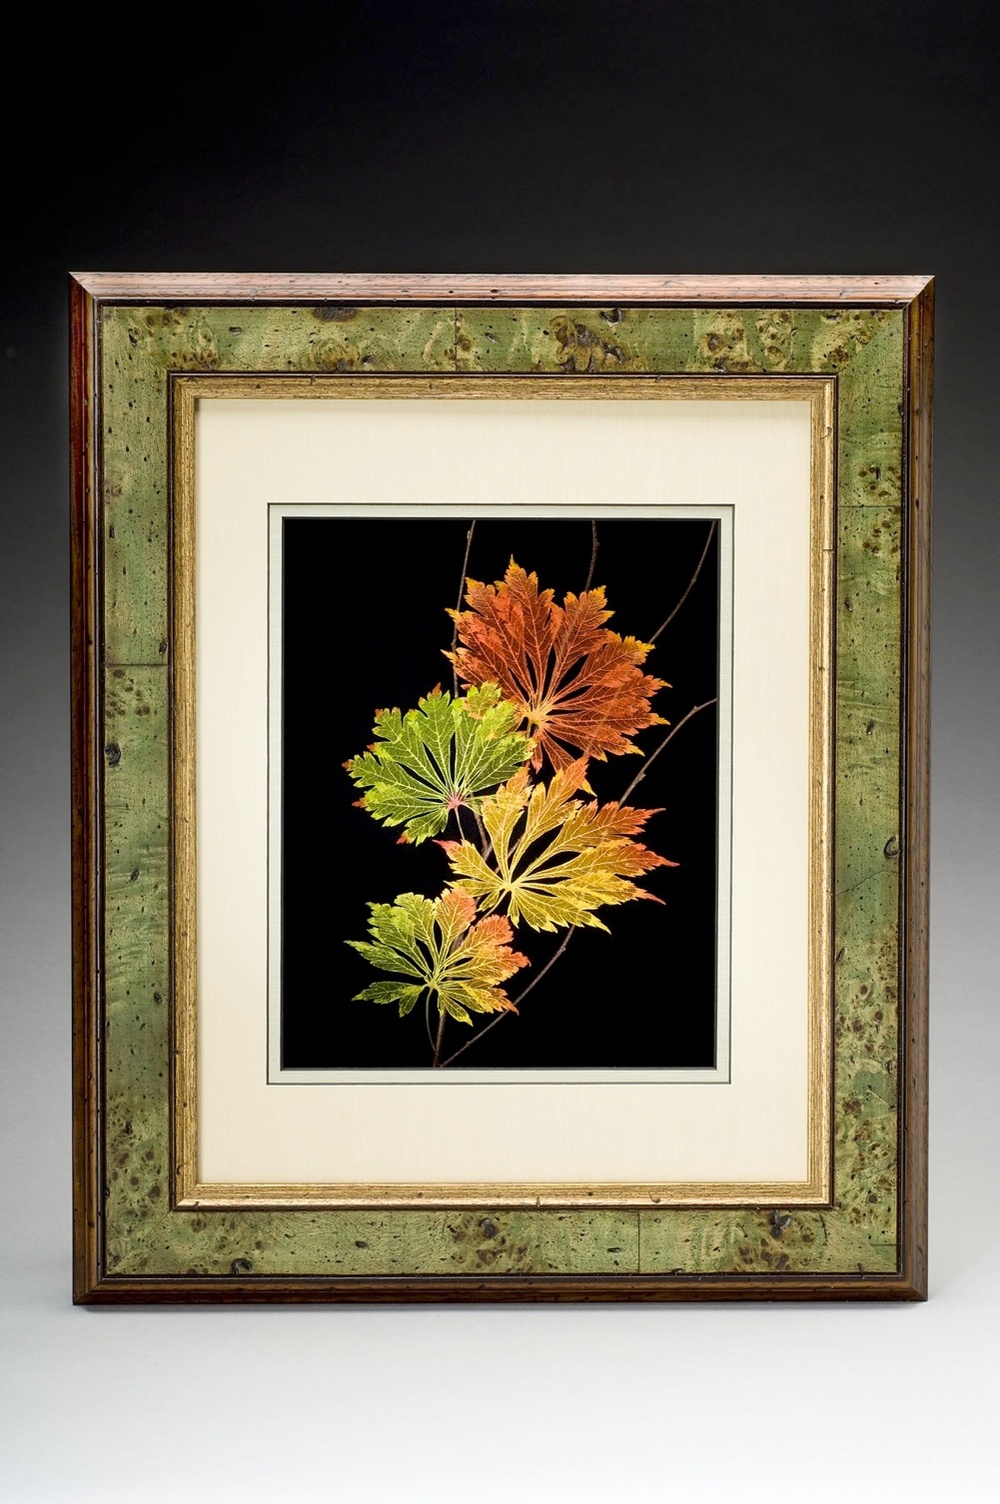 Shadowbox 11x14 Full-moon Japanese Maple